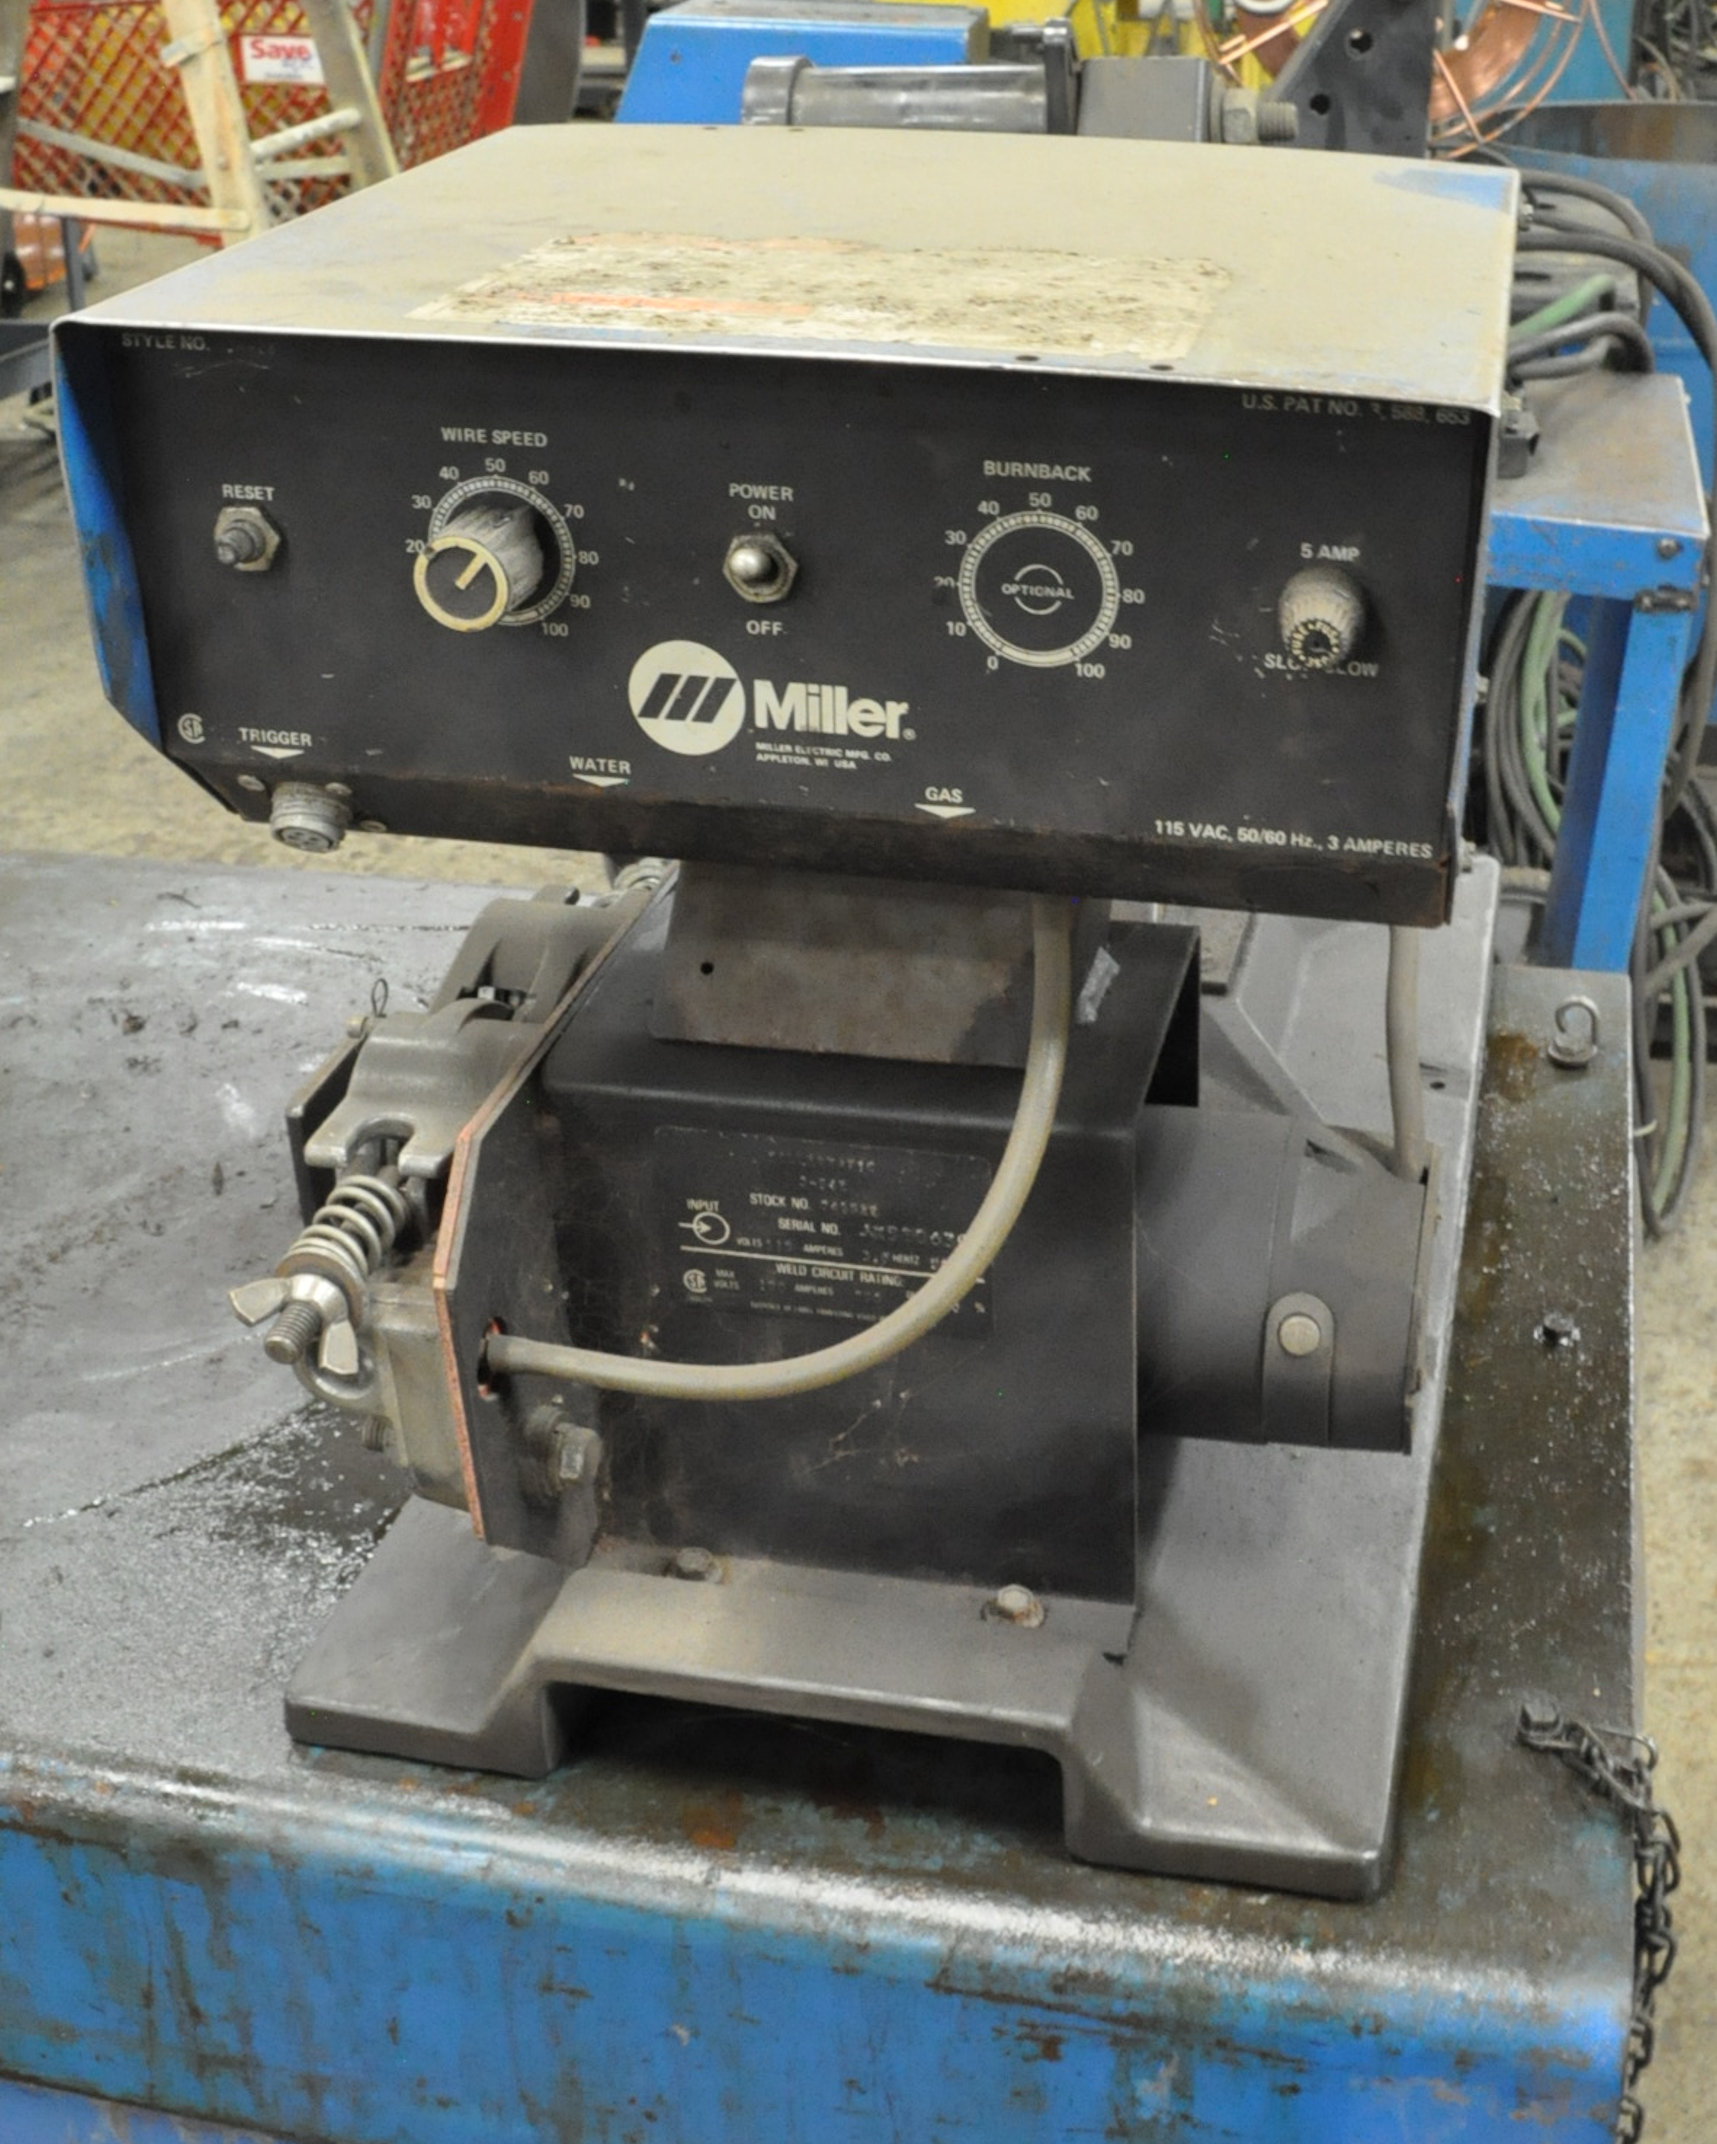 Miller Deltaweld 450, 450-Amp DC Arc Welding Power Source with Millermatic S-45E Wire Feeder - Image 2 of 3